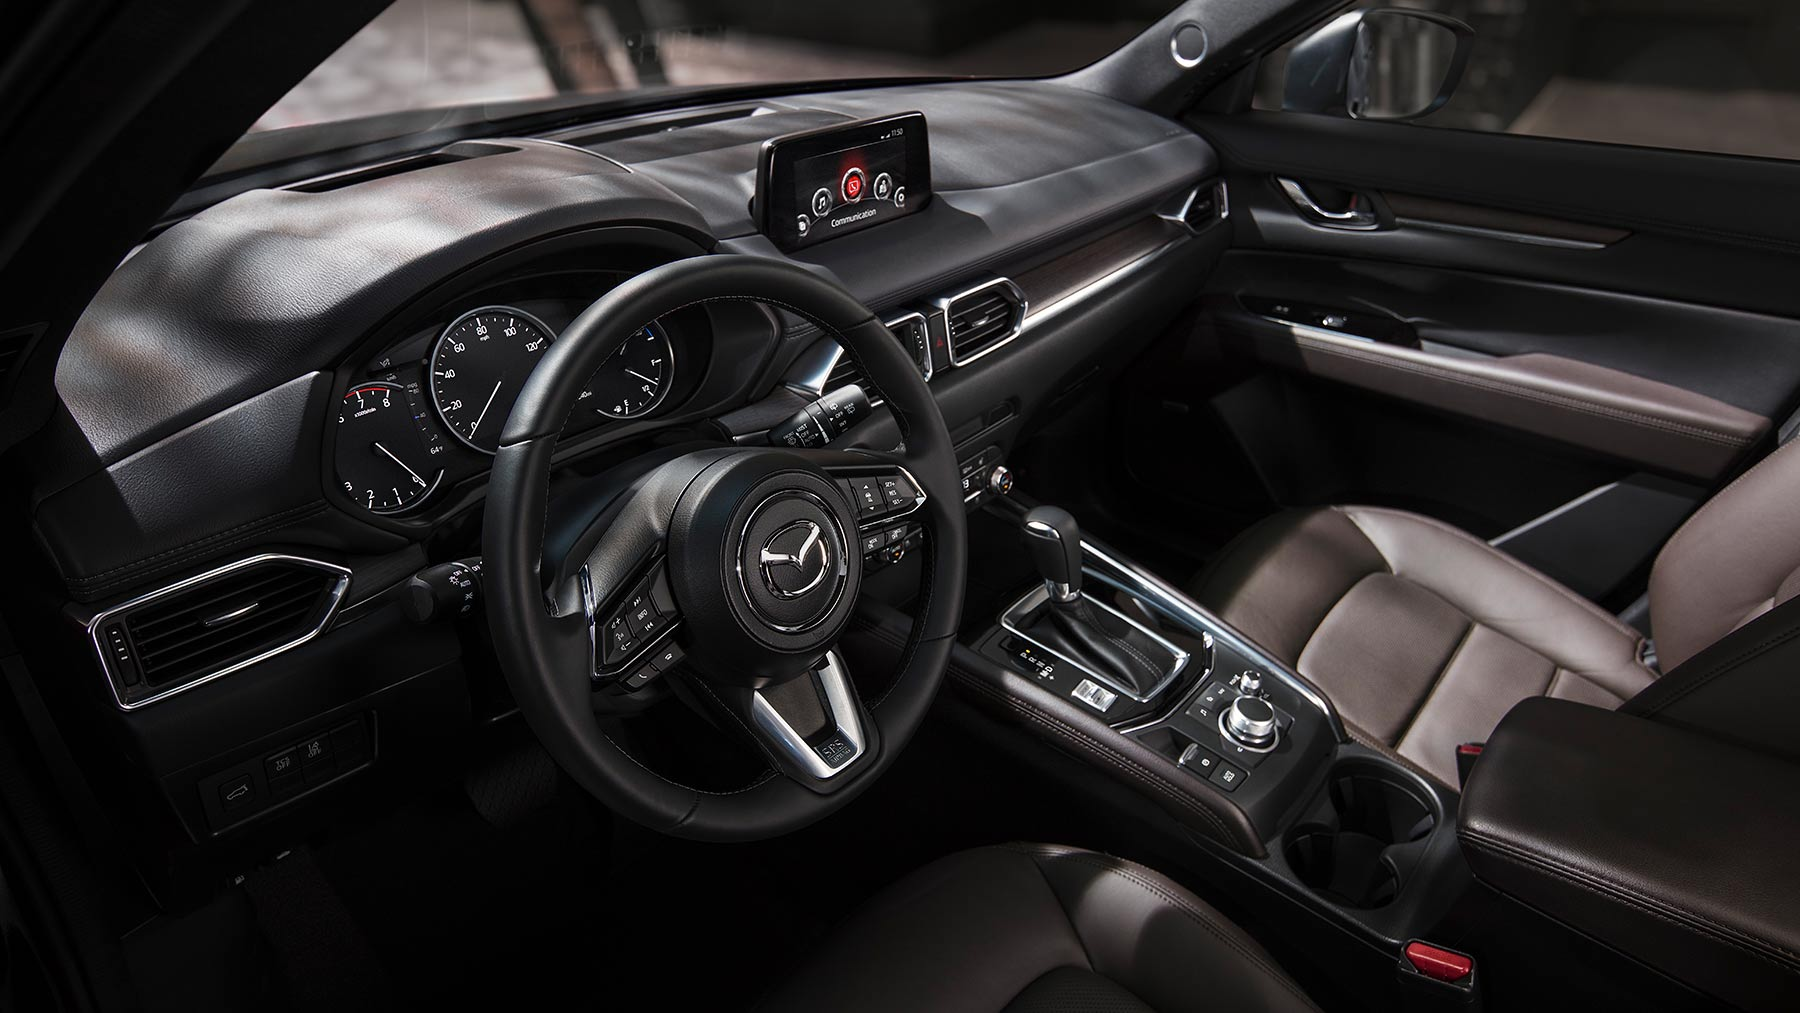 2019 Mazda CX-5 Front Seats and Center Console